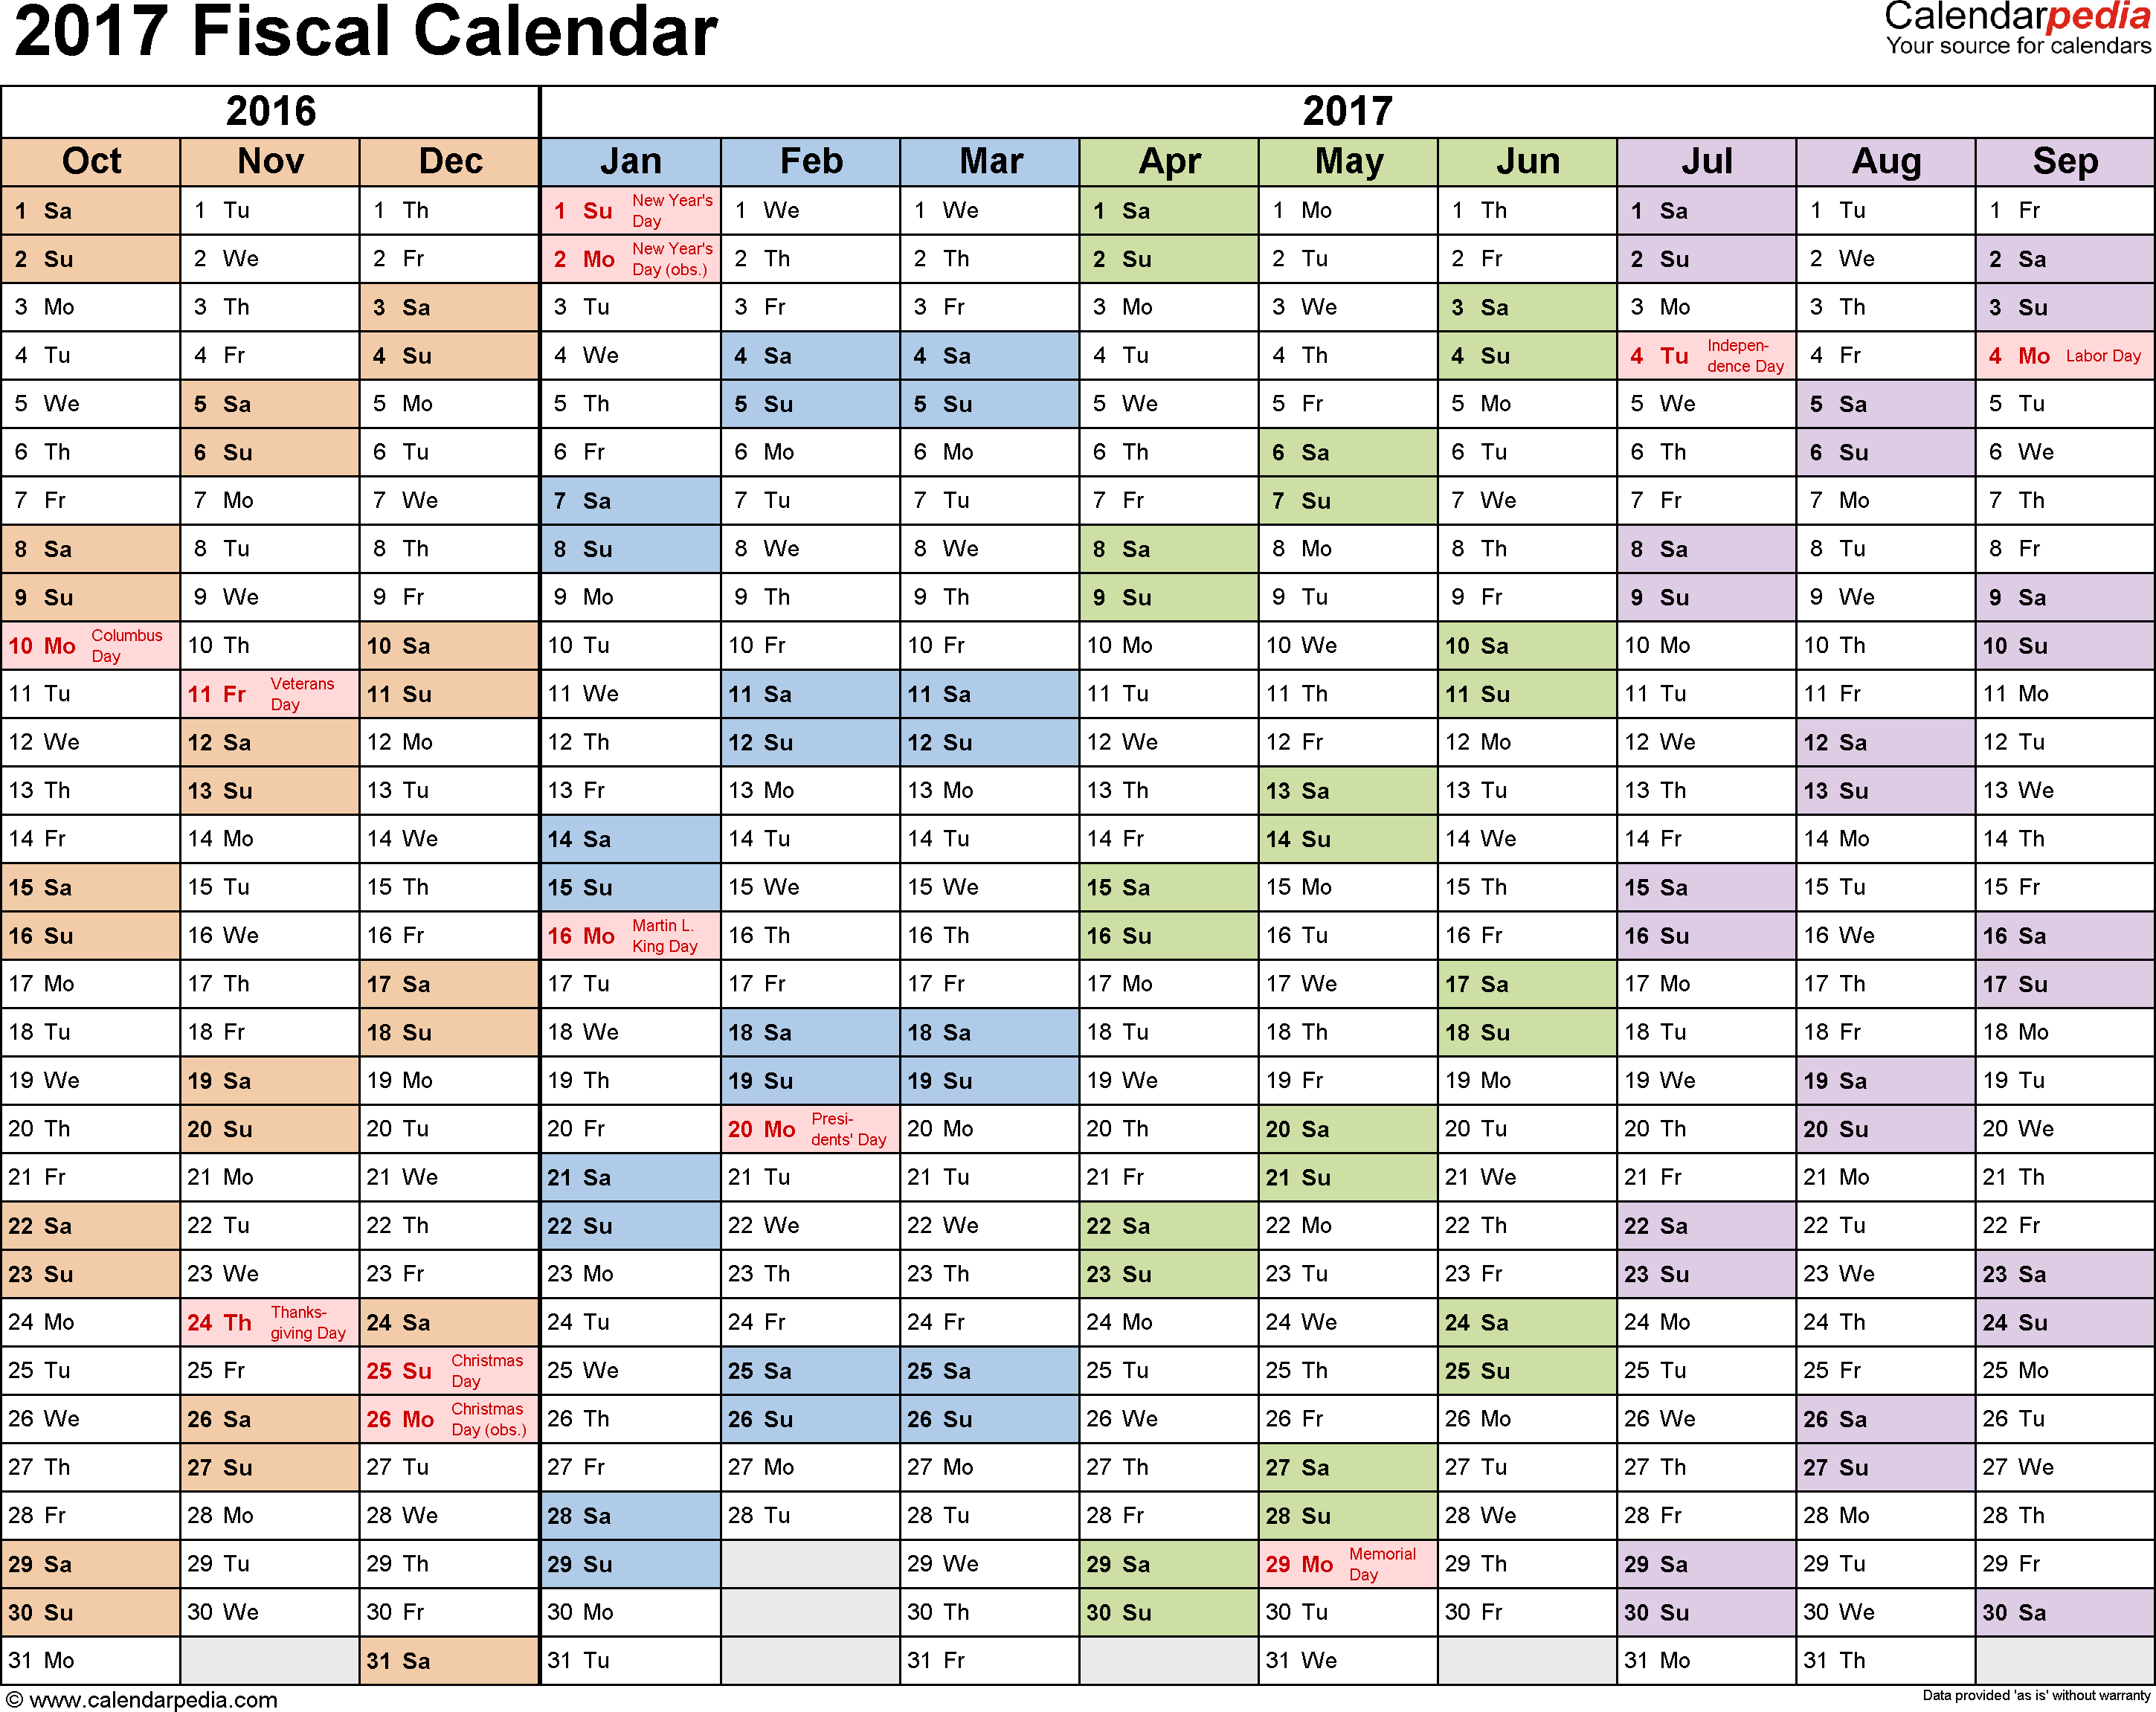 ... Year Calendar Fiscal calendars 2017 as free printable pdf templates